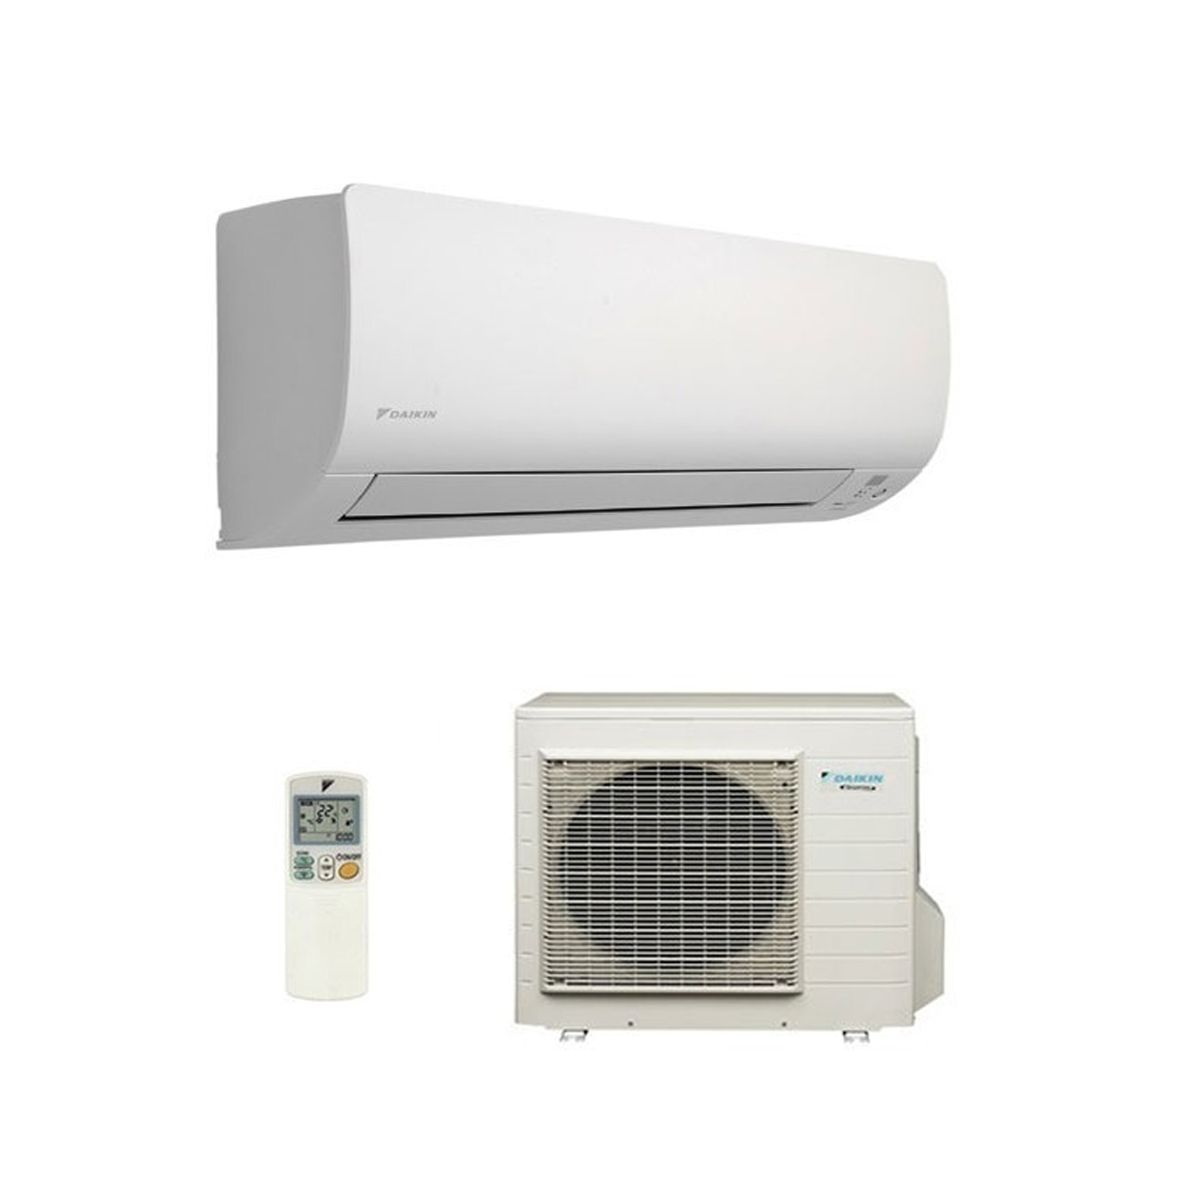 243225e94 Daikin Air Conditioning FTXS25K Wall Mounted (2.5Kw   9000 Btu) Inverter  Heat Pump A++ 240V~50Hz